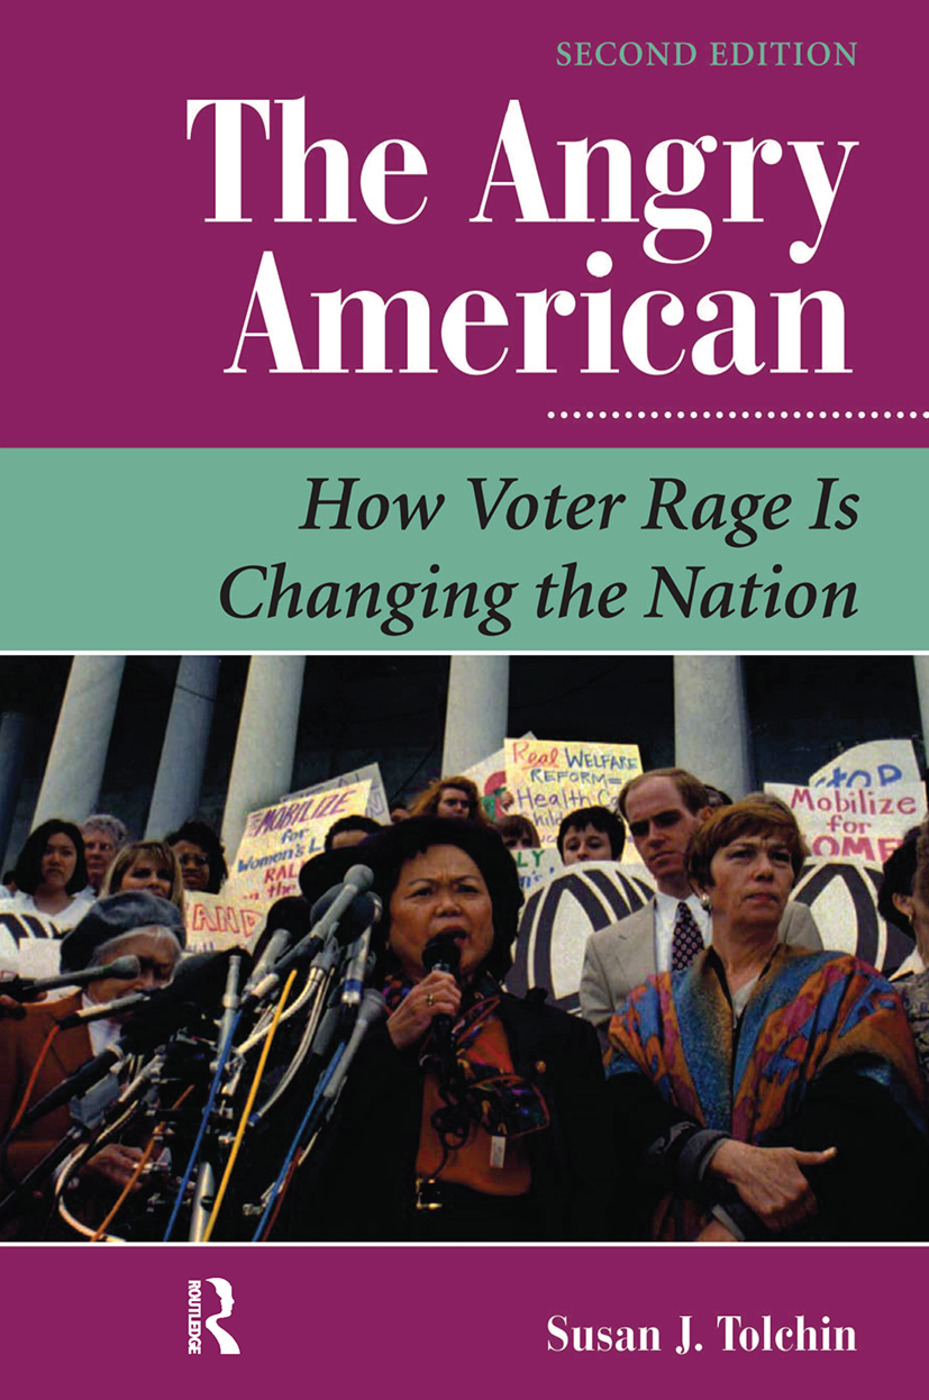 The Angry American: How Voter Rage Is Changing The Nation book cover